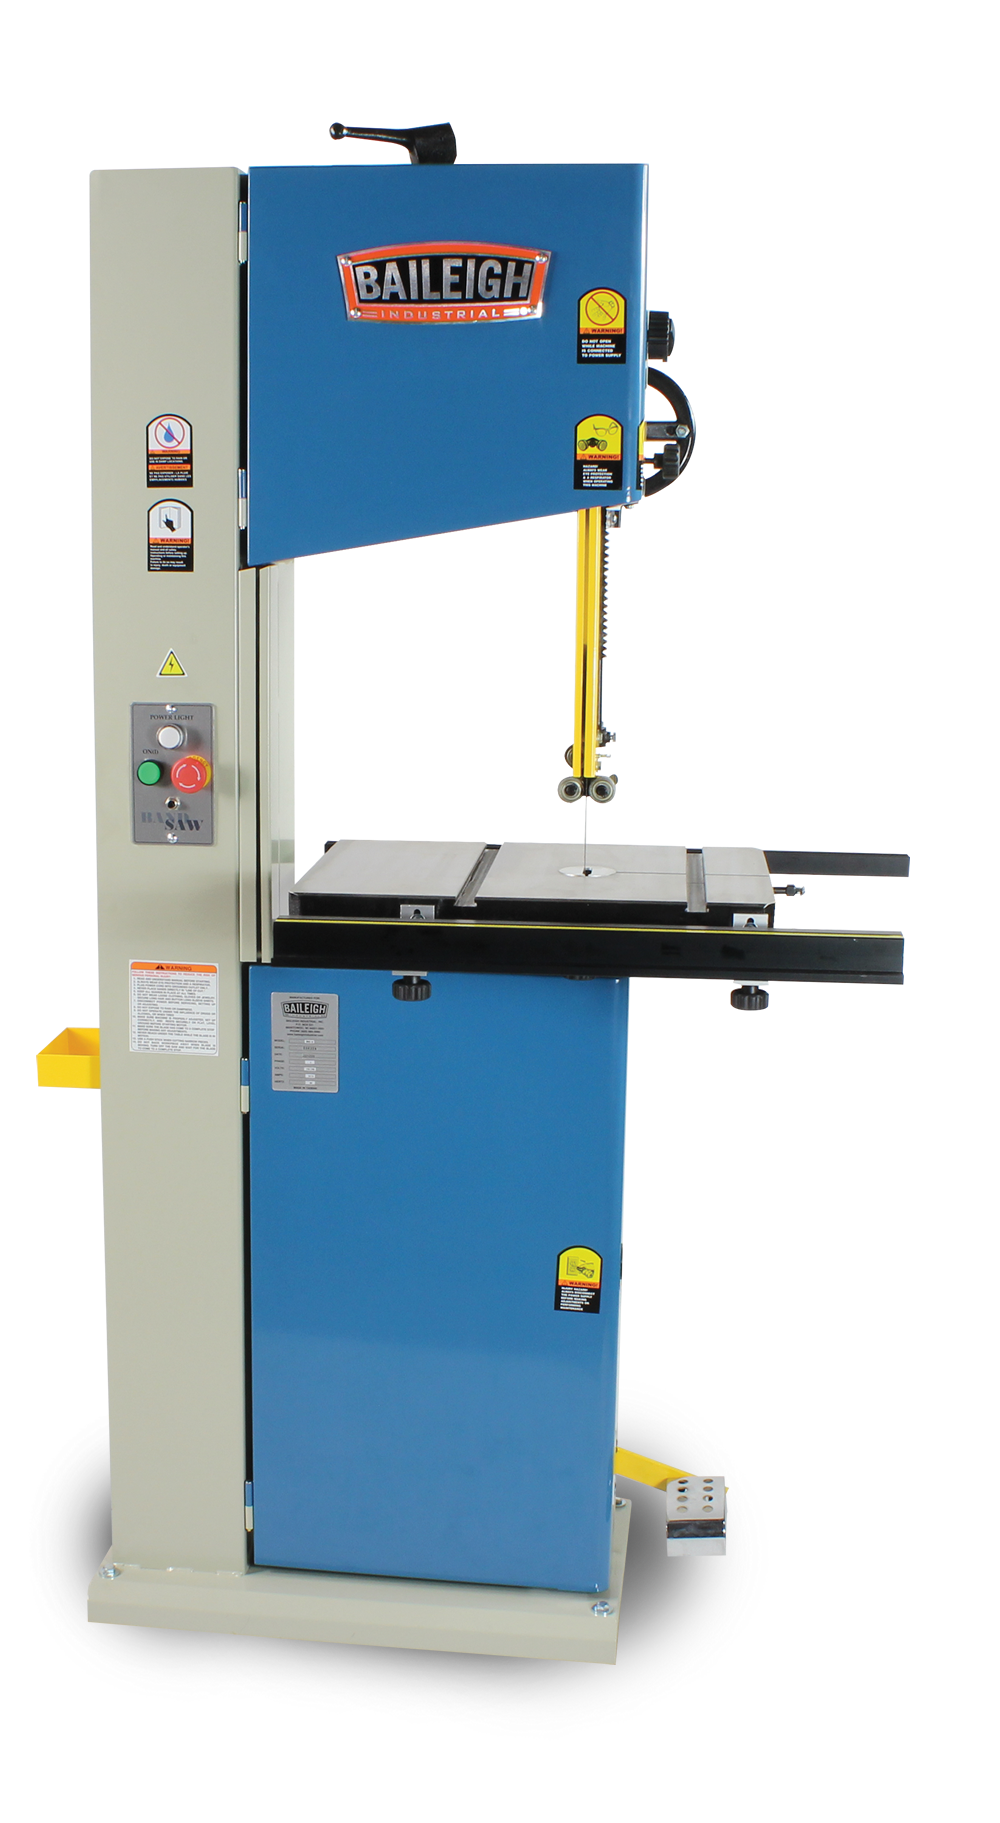 Baileigh Wbs 14 Vertical Band Saw Elite Metal Tools